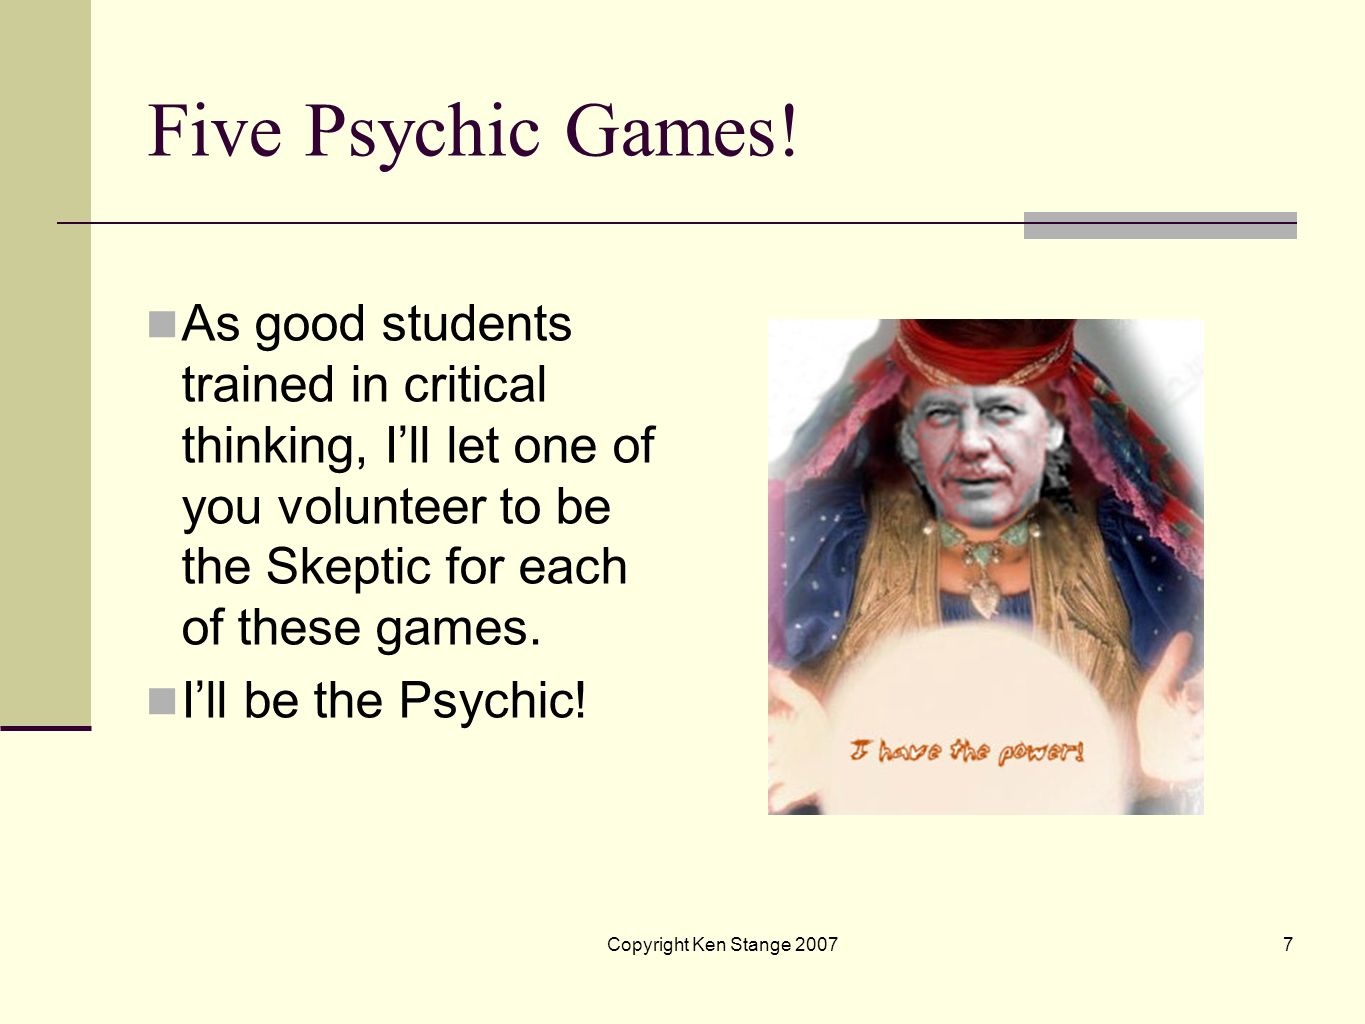 Five Psychic Games!As good students trained in critical thinking, I'll let one of you volunteer to be the Skeptic for each of these games.